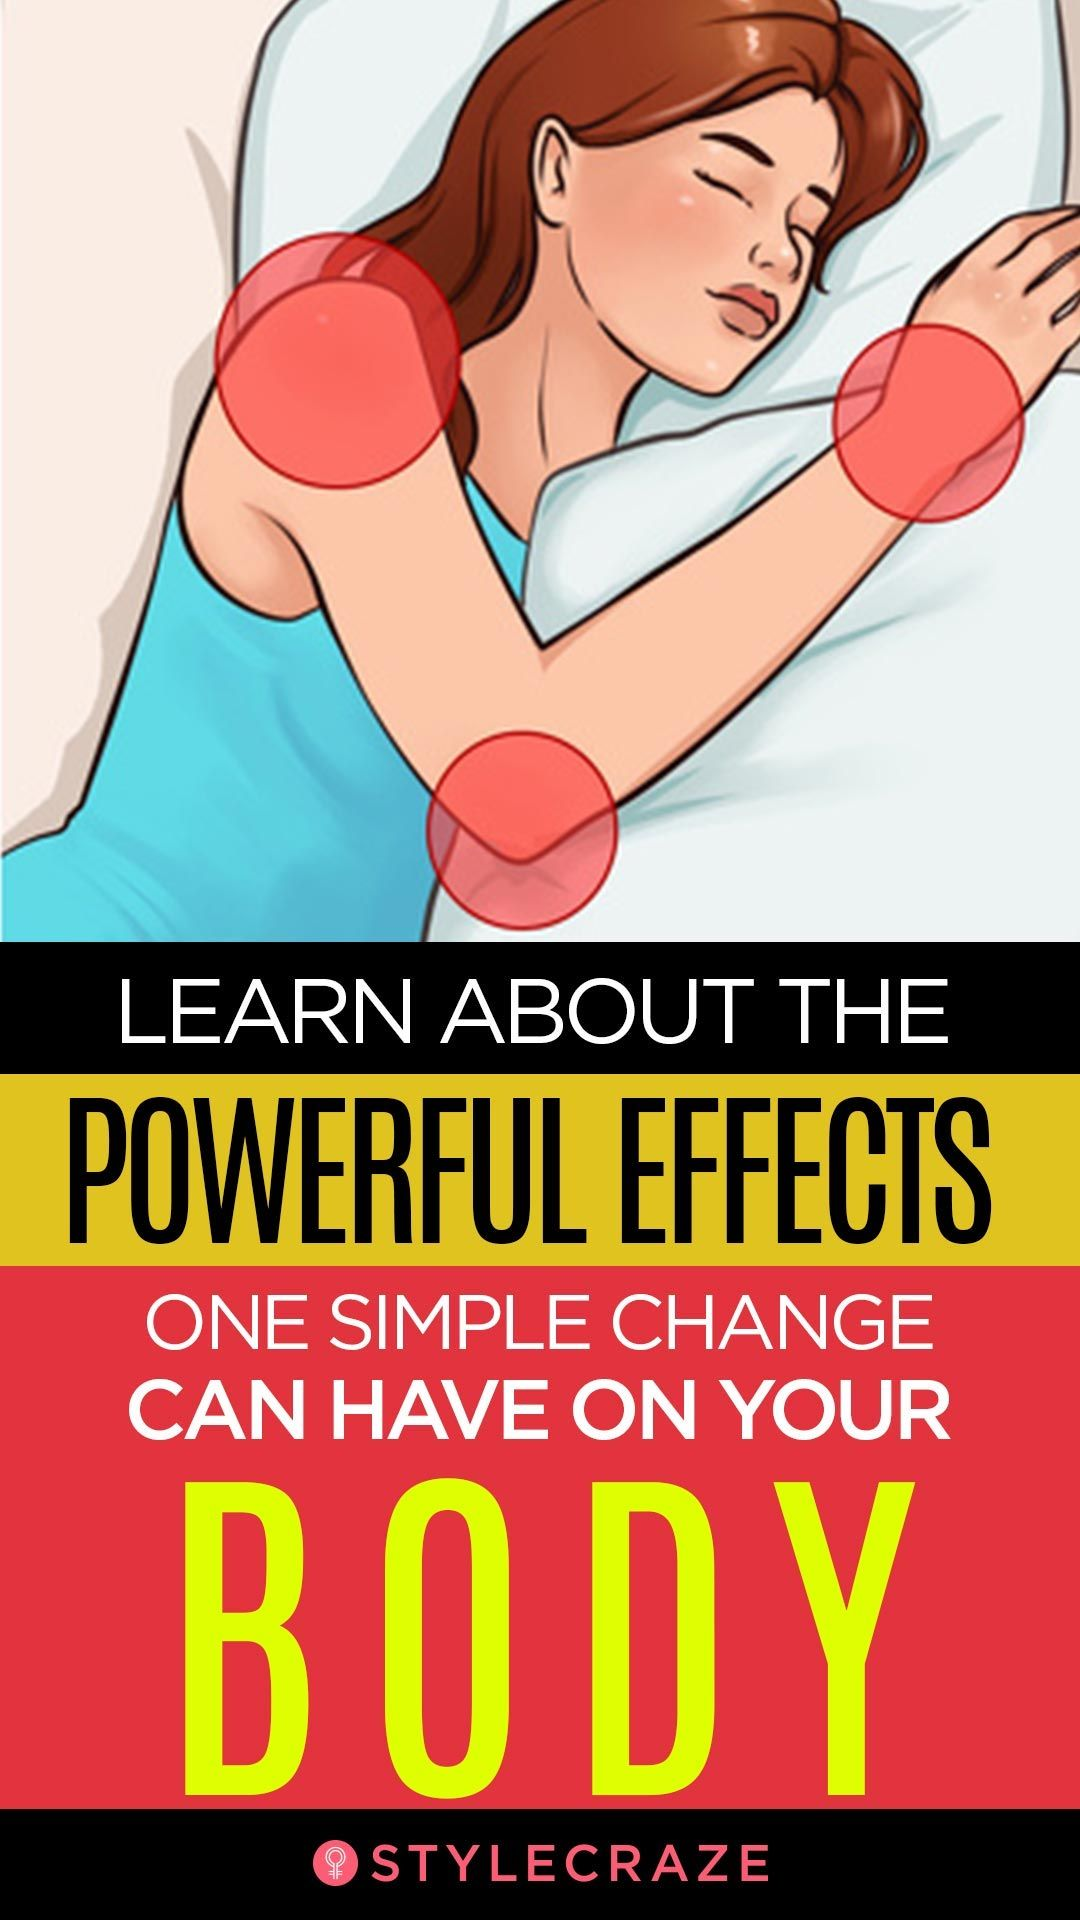 picture DoYou Sleep onYour Side Learn About the Powerful Effects One Simple Change Can Have onYour Body